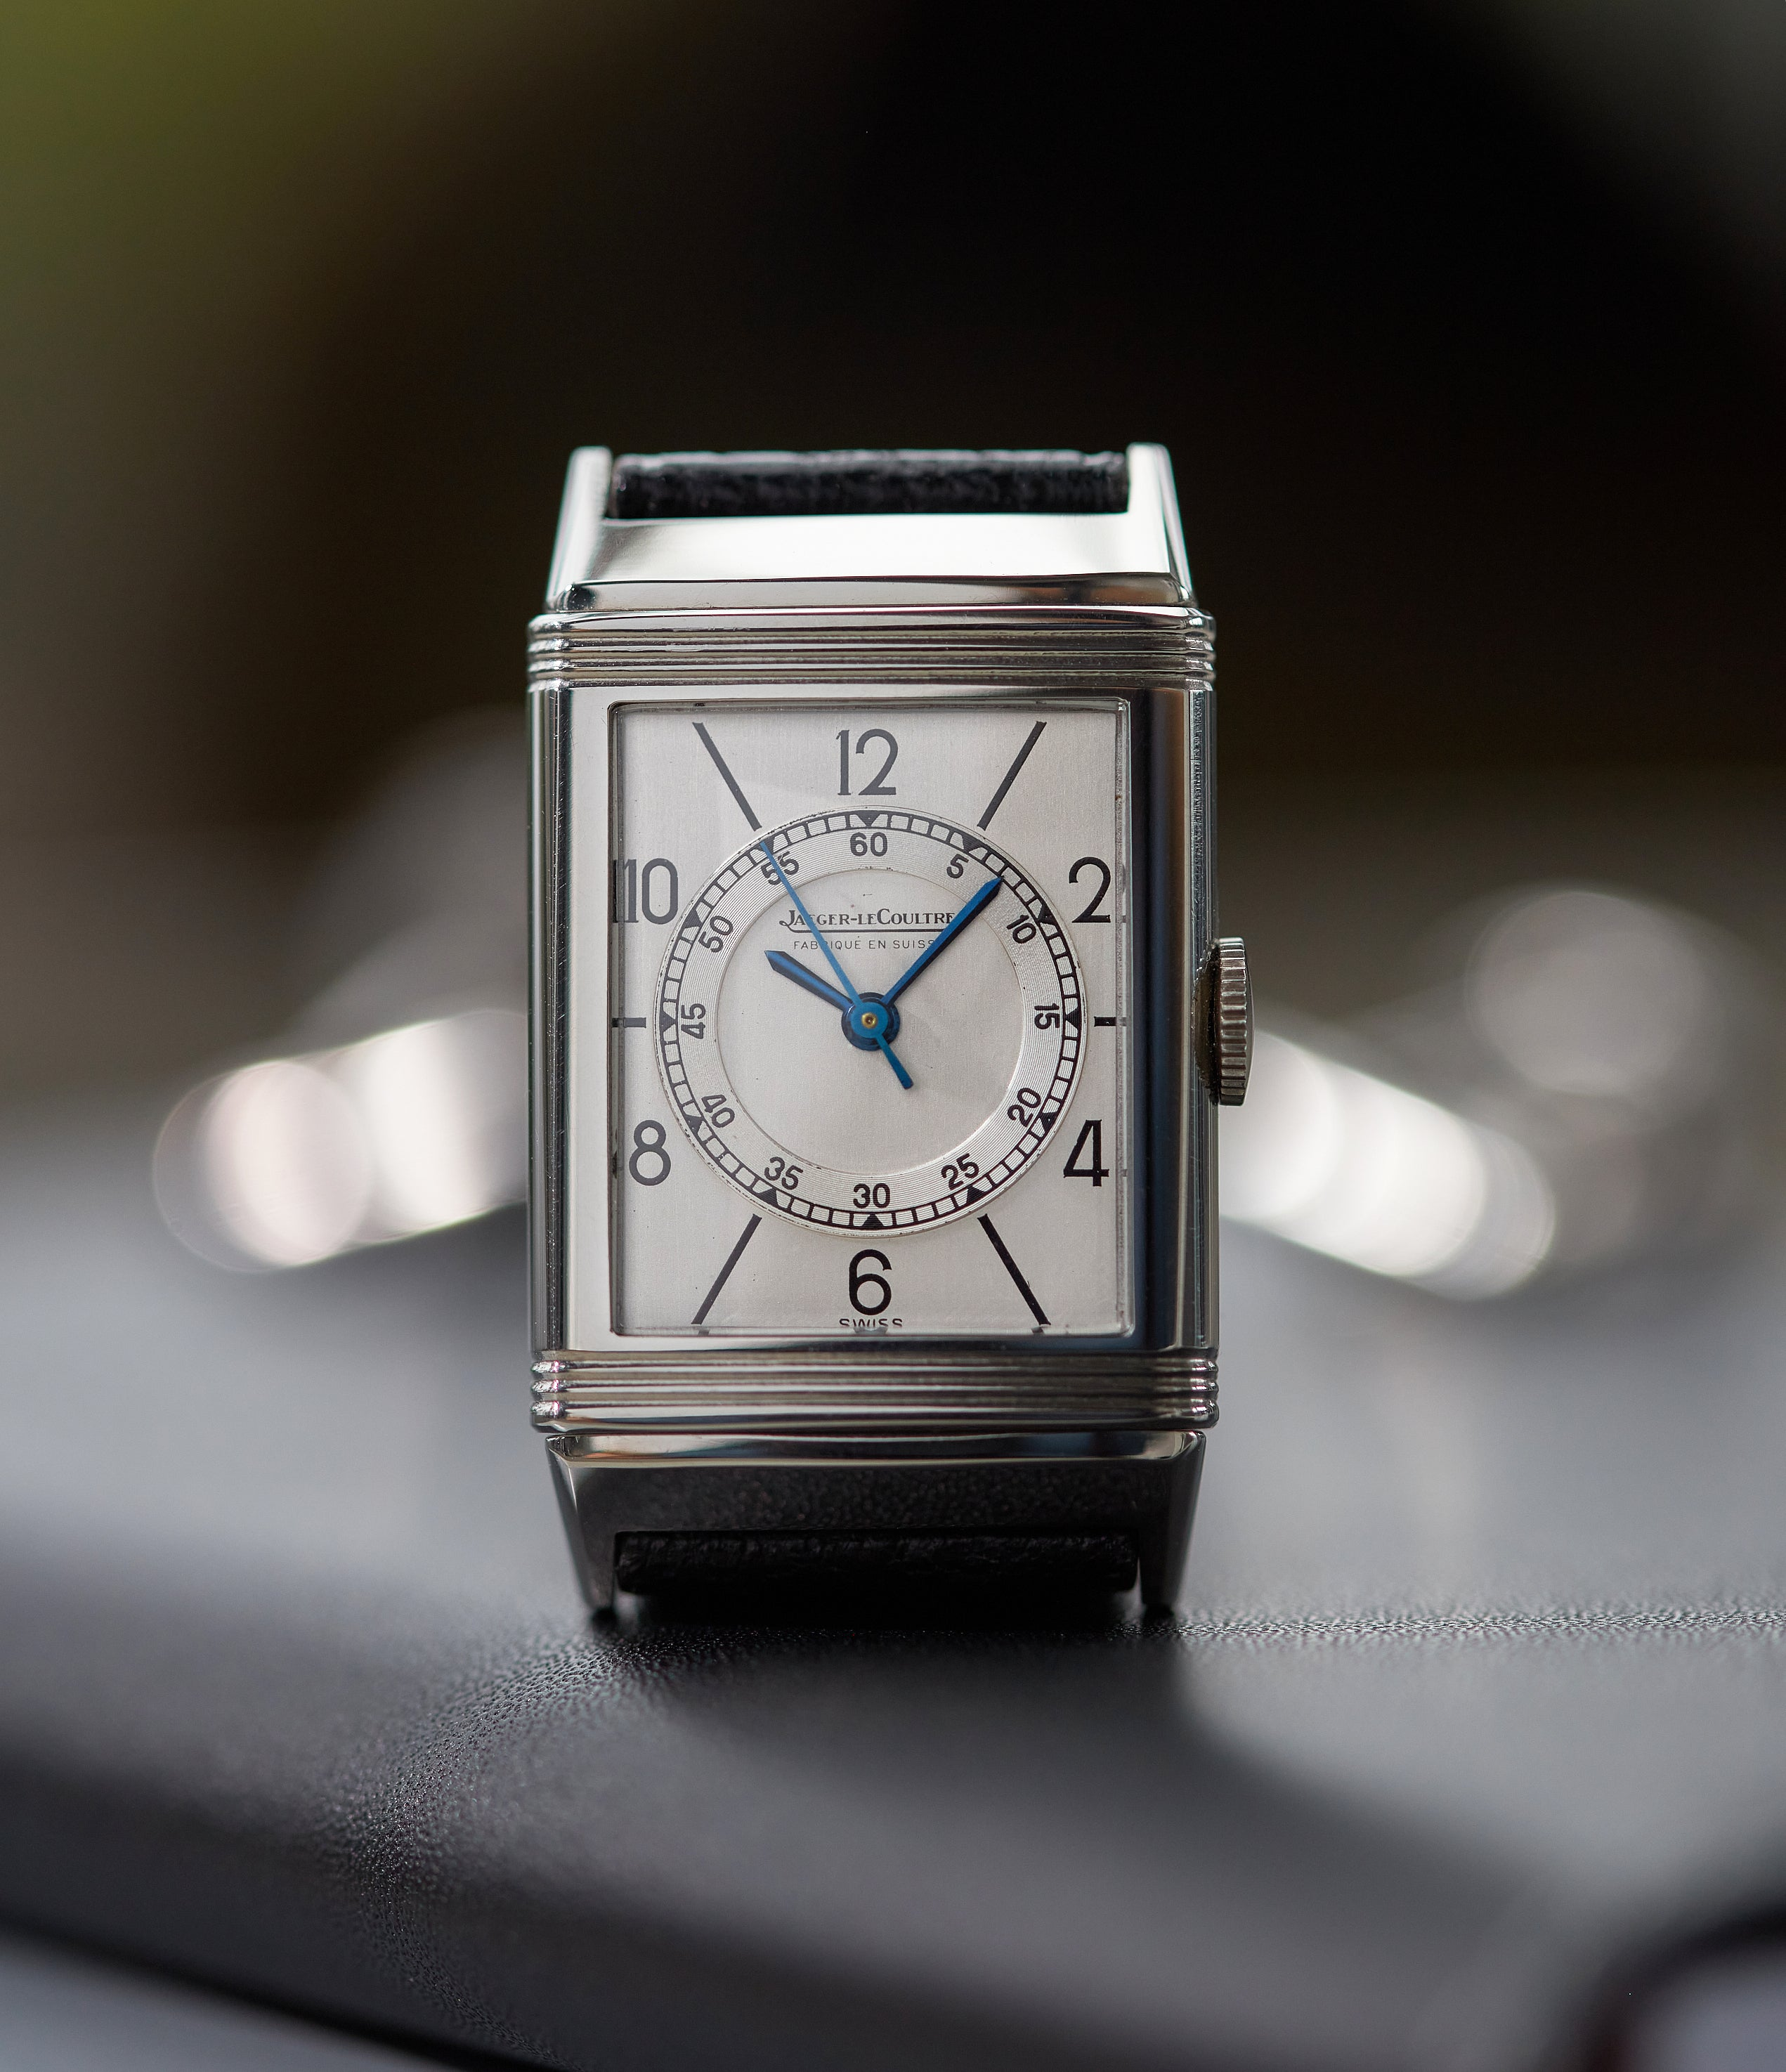 White dial Jaeger-LeCoultre Reverso from 1933 with Order of the Thistle emblem on caseback in The Flippin' History of the Reverso for A Collected Man